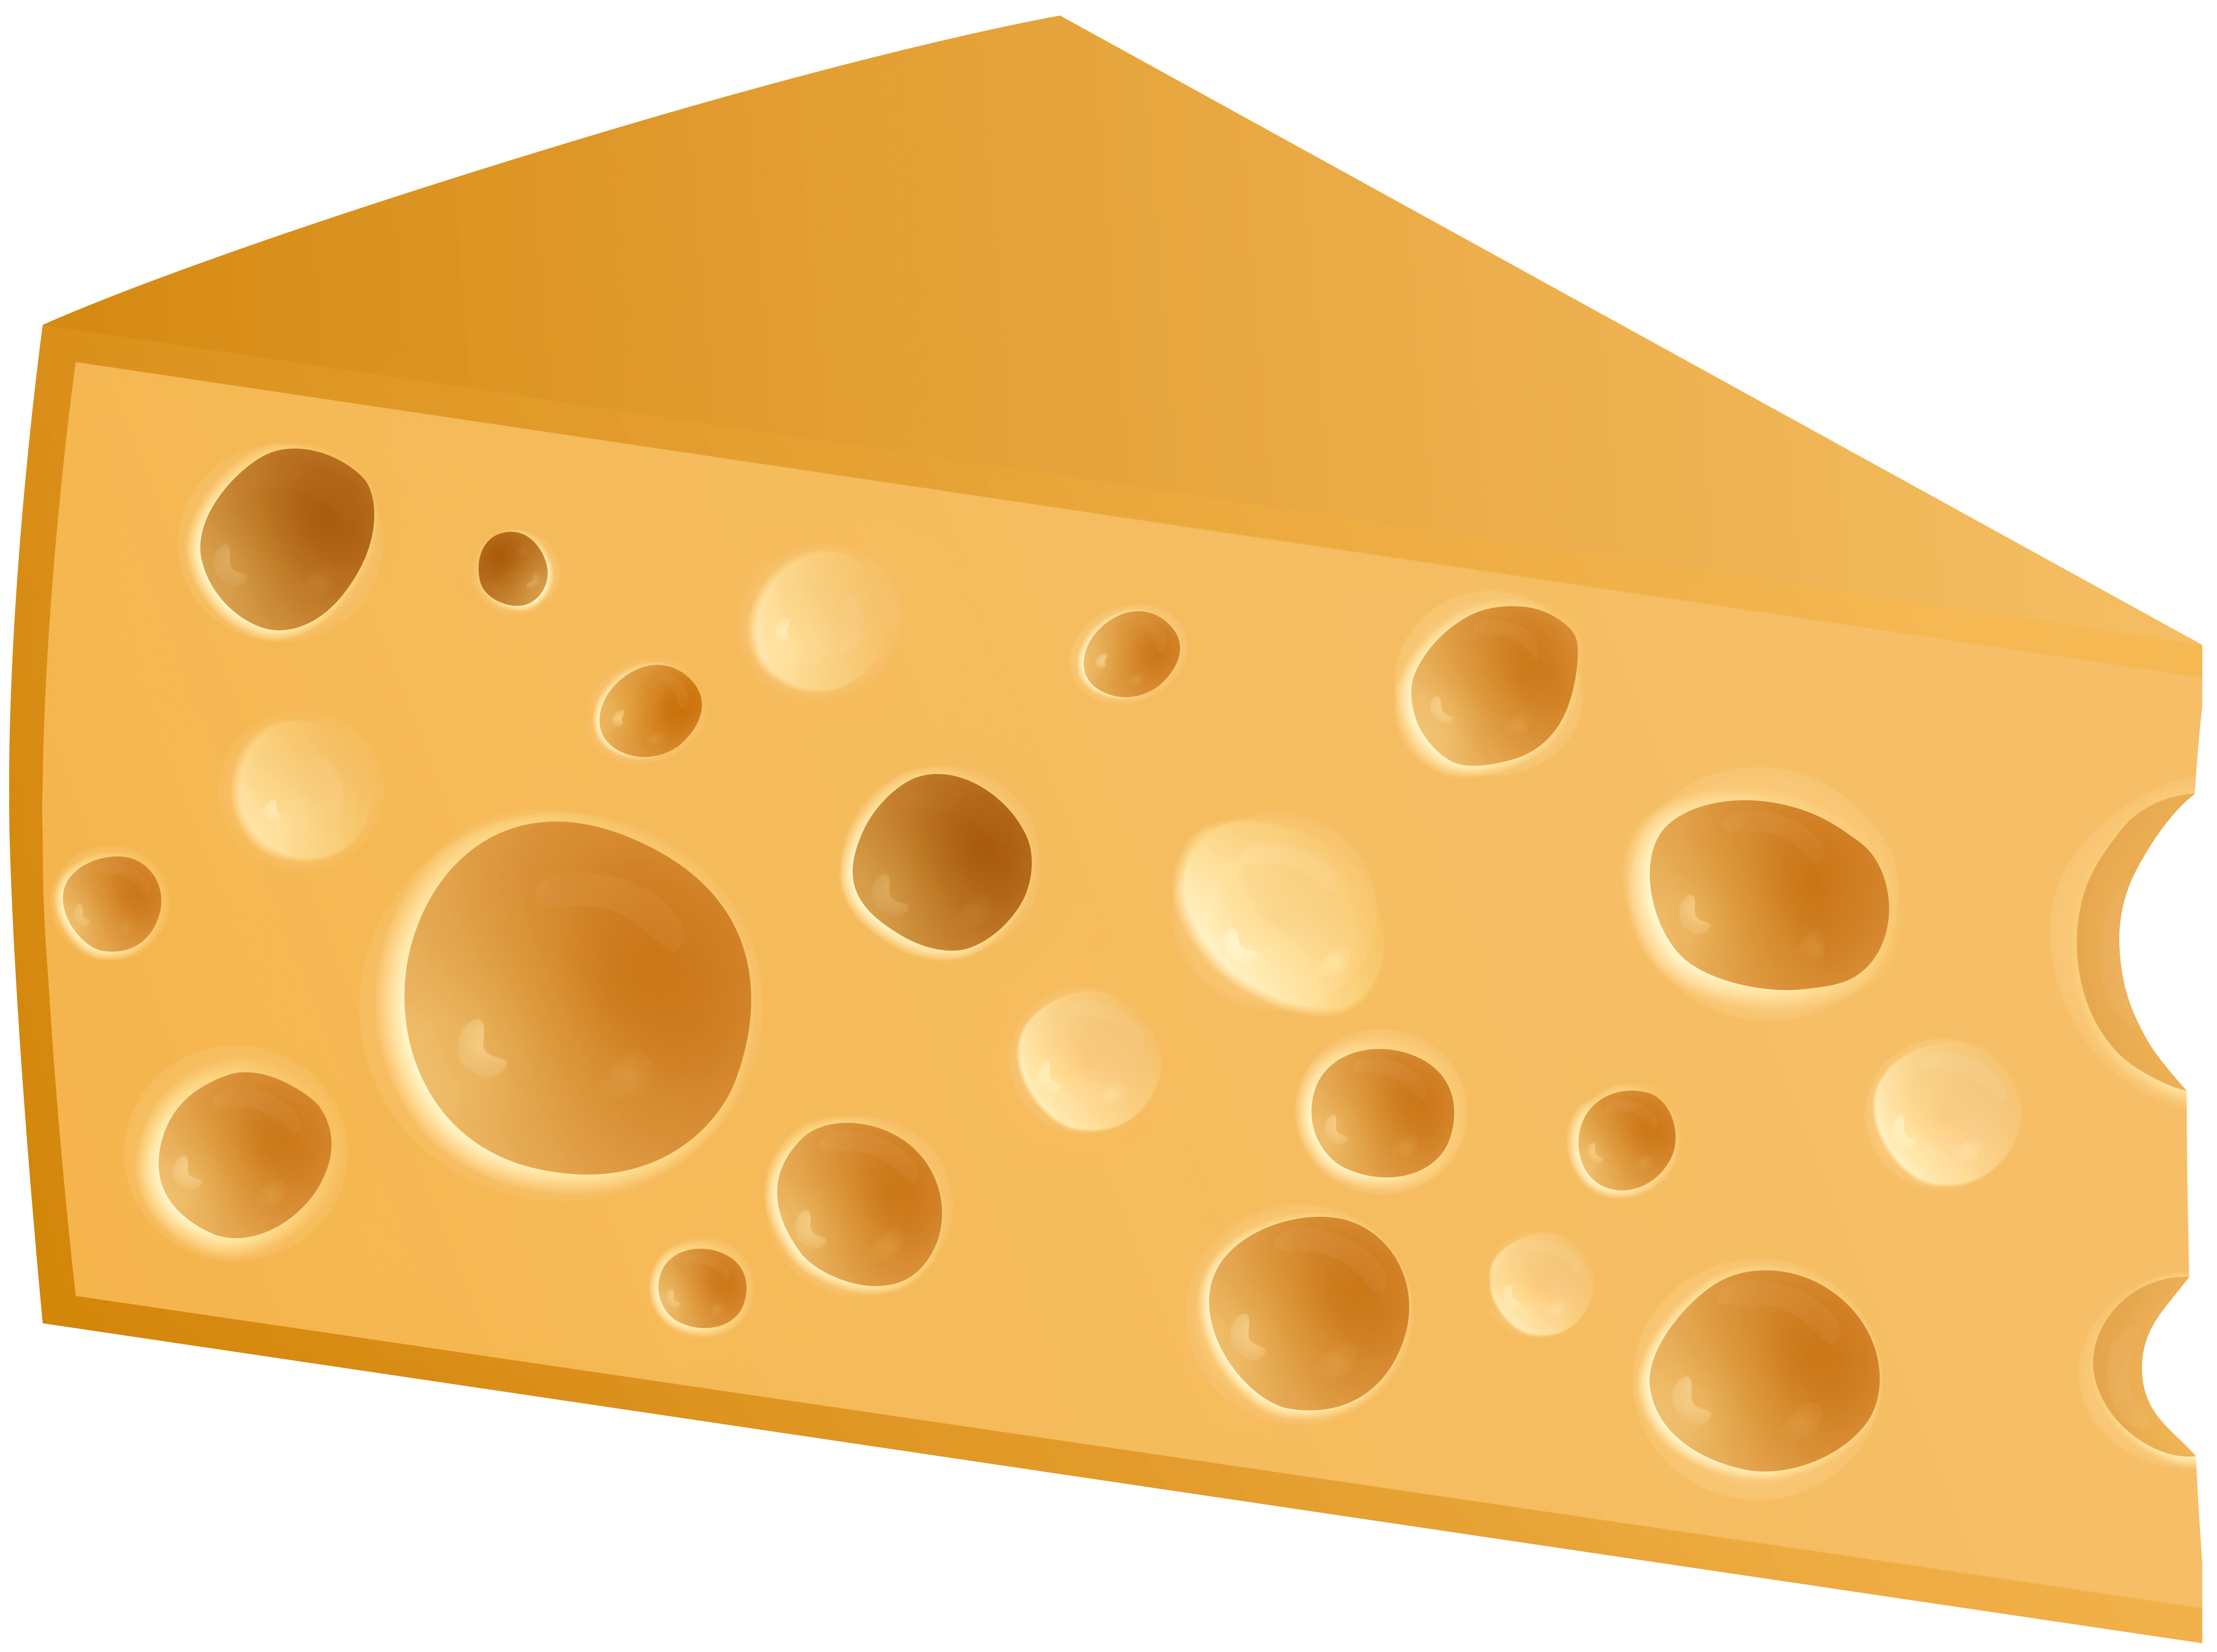 Swiss cheese pictures clipart png freeuse library Swiss Cheese PNG Clip Art - Best WEB Clipart png freeuse library